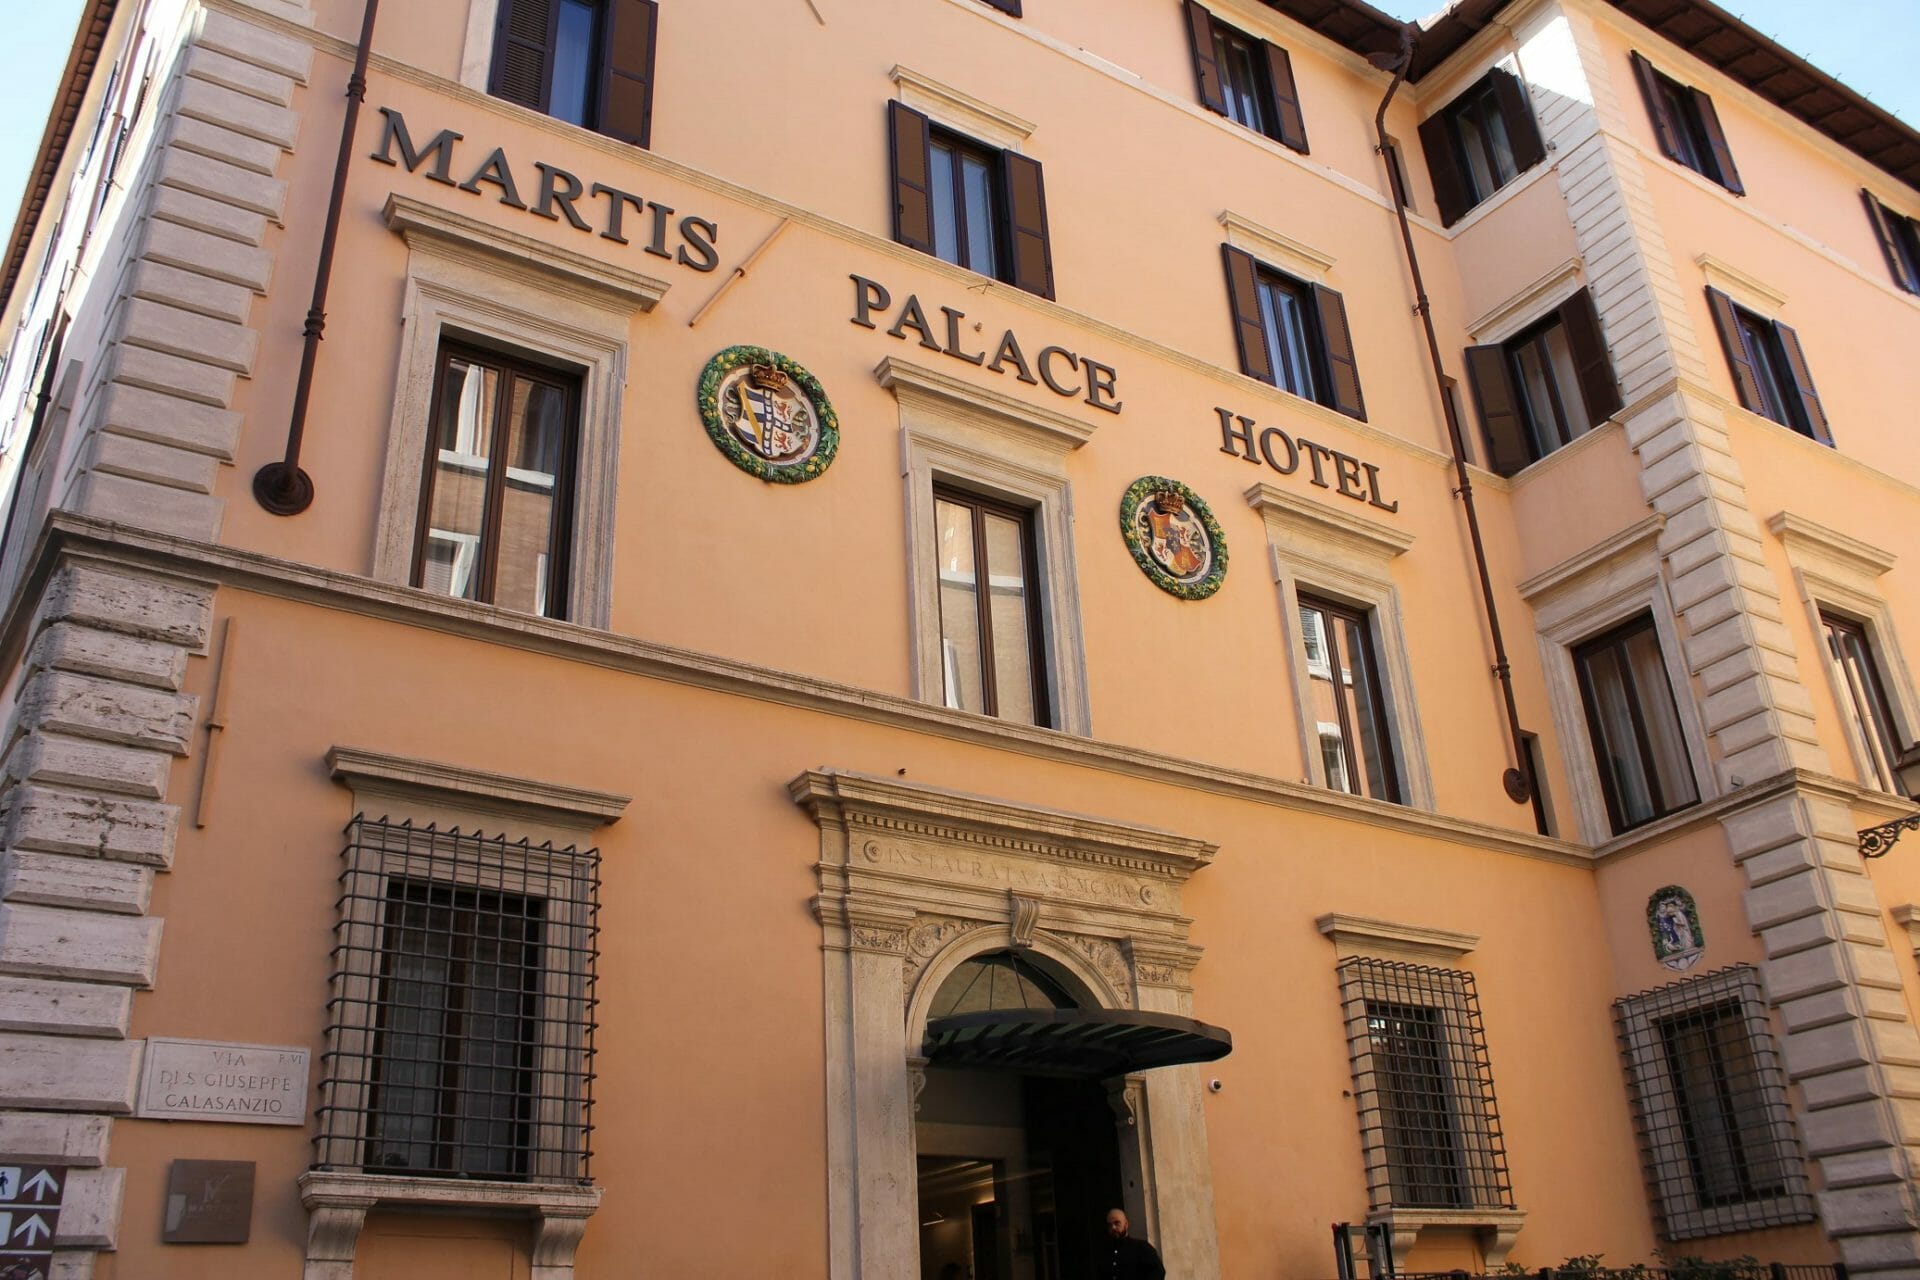 where to Stay in Rome Martis hotel